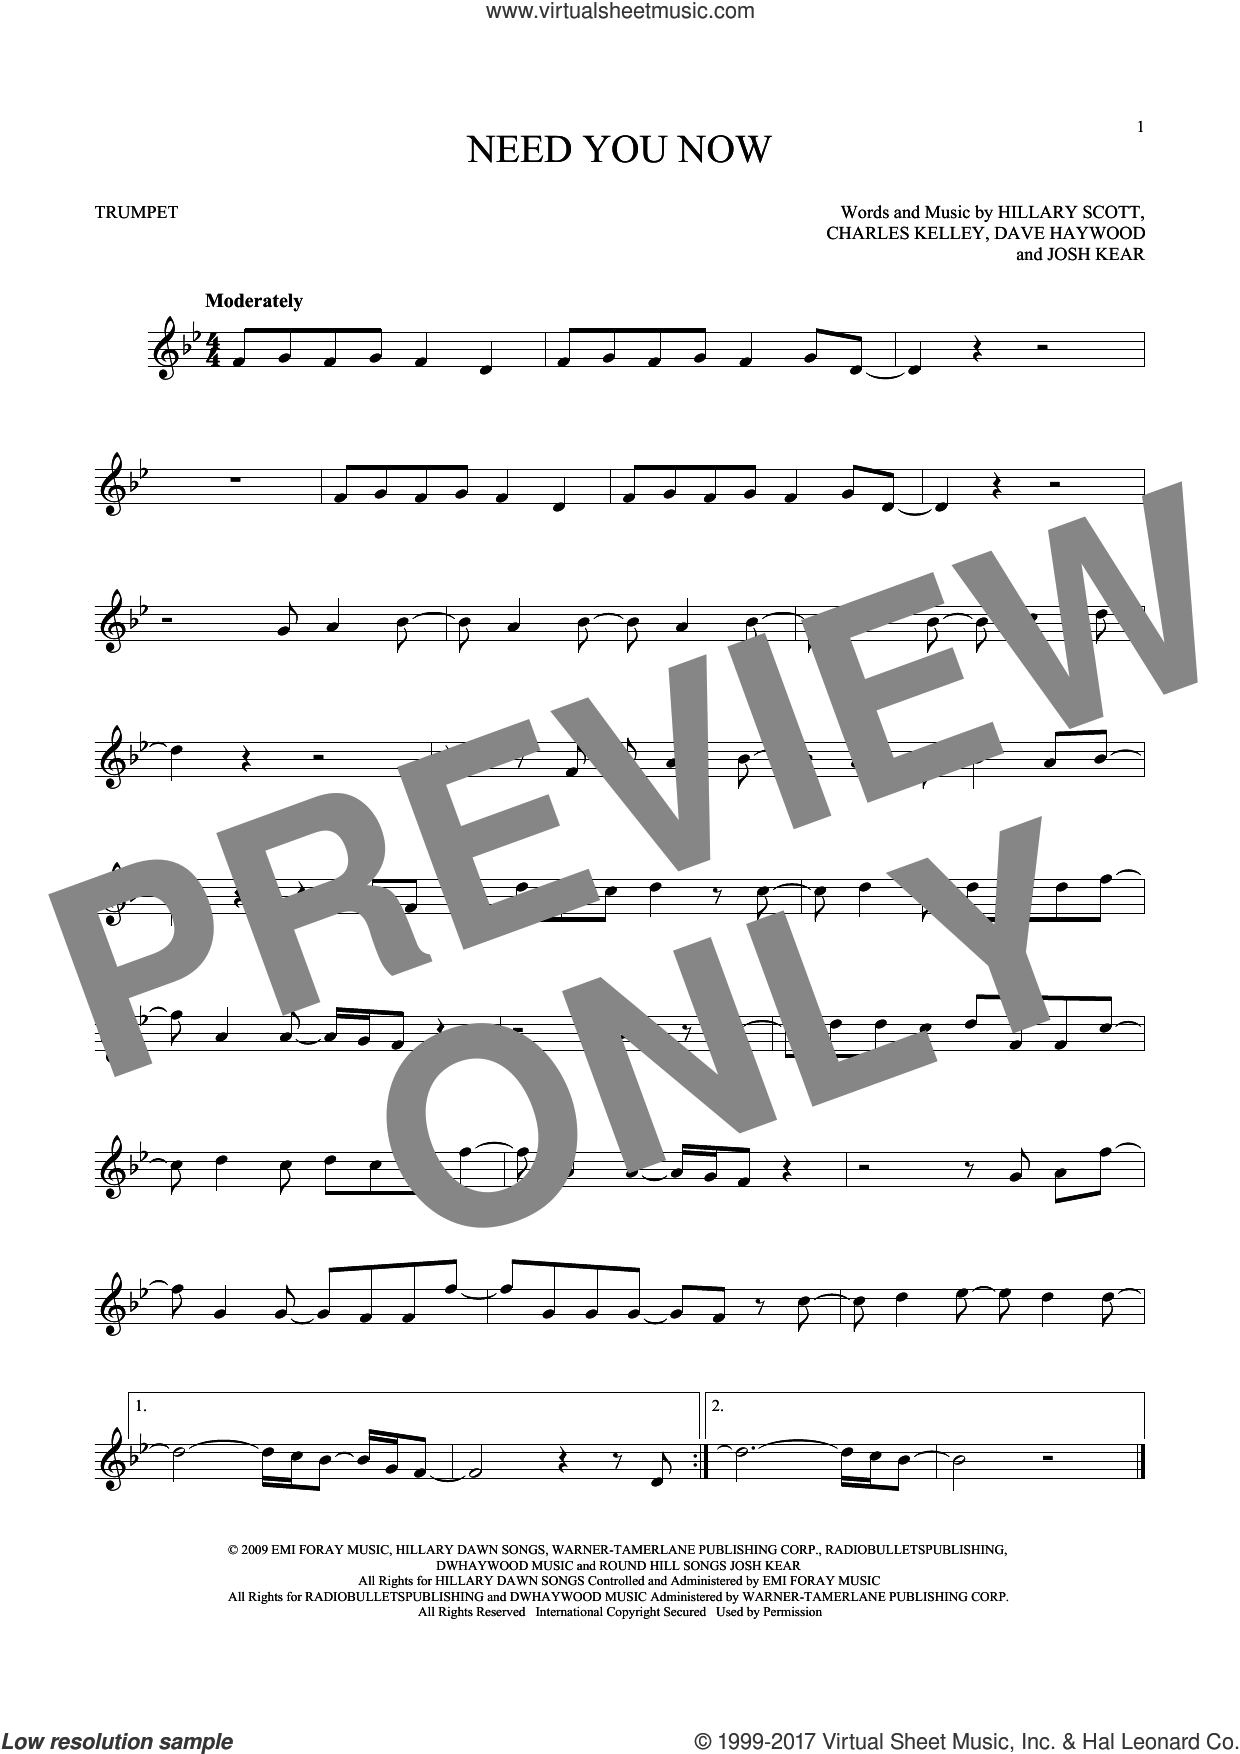 Need You Now sheet music for trumpet solo by Lady Antebellum, Charles Kelley, Dave Haywood, Hillary Scott and Josh Kear, intermediate skill level